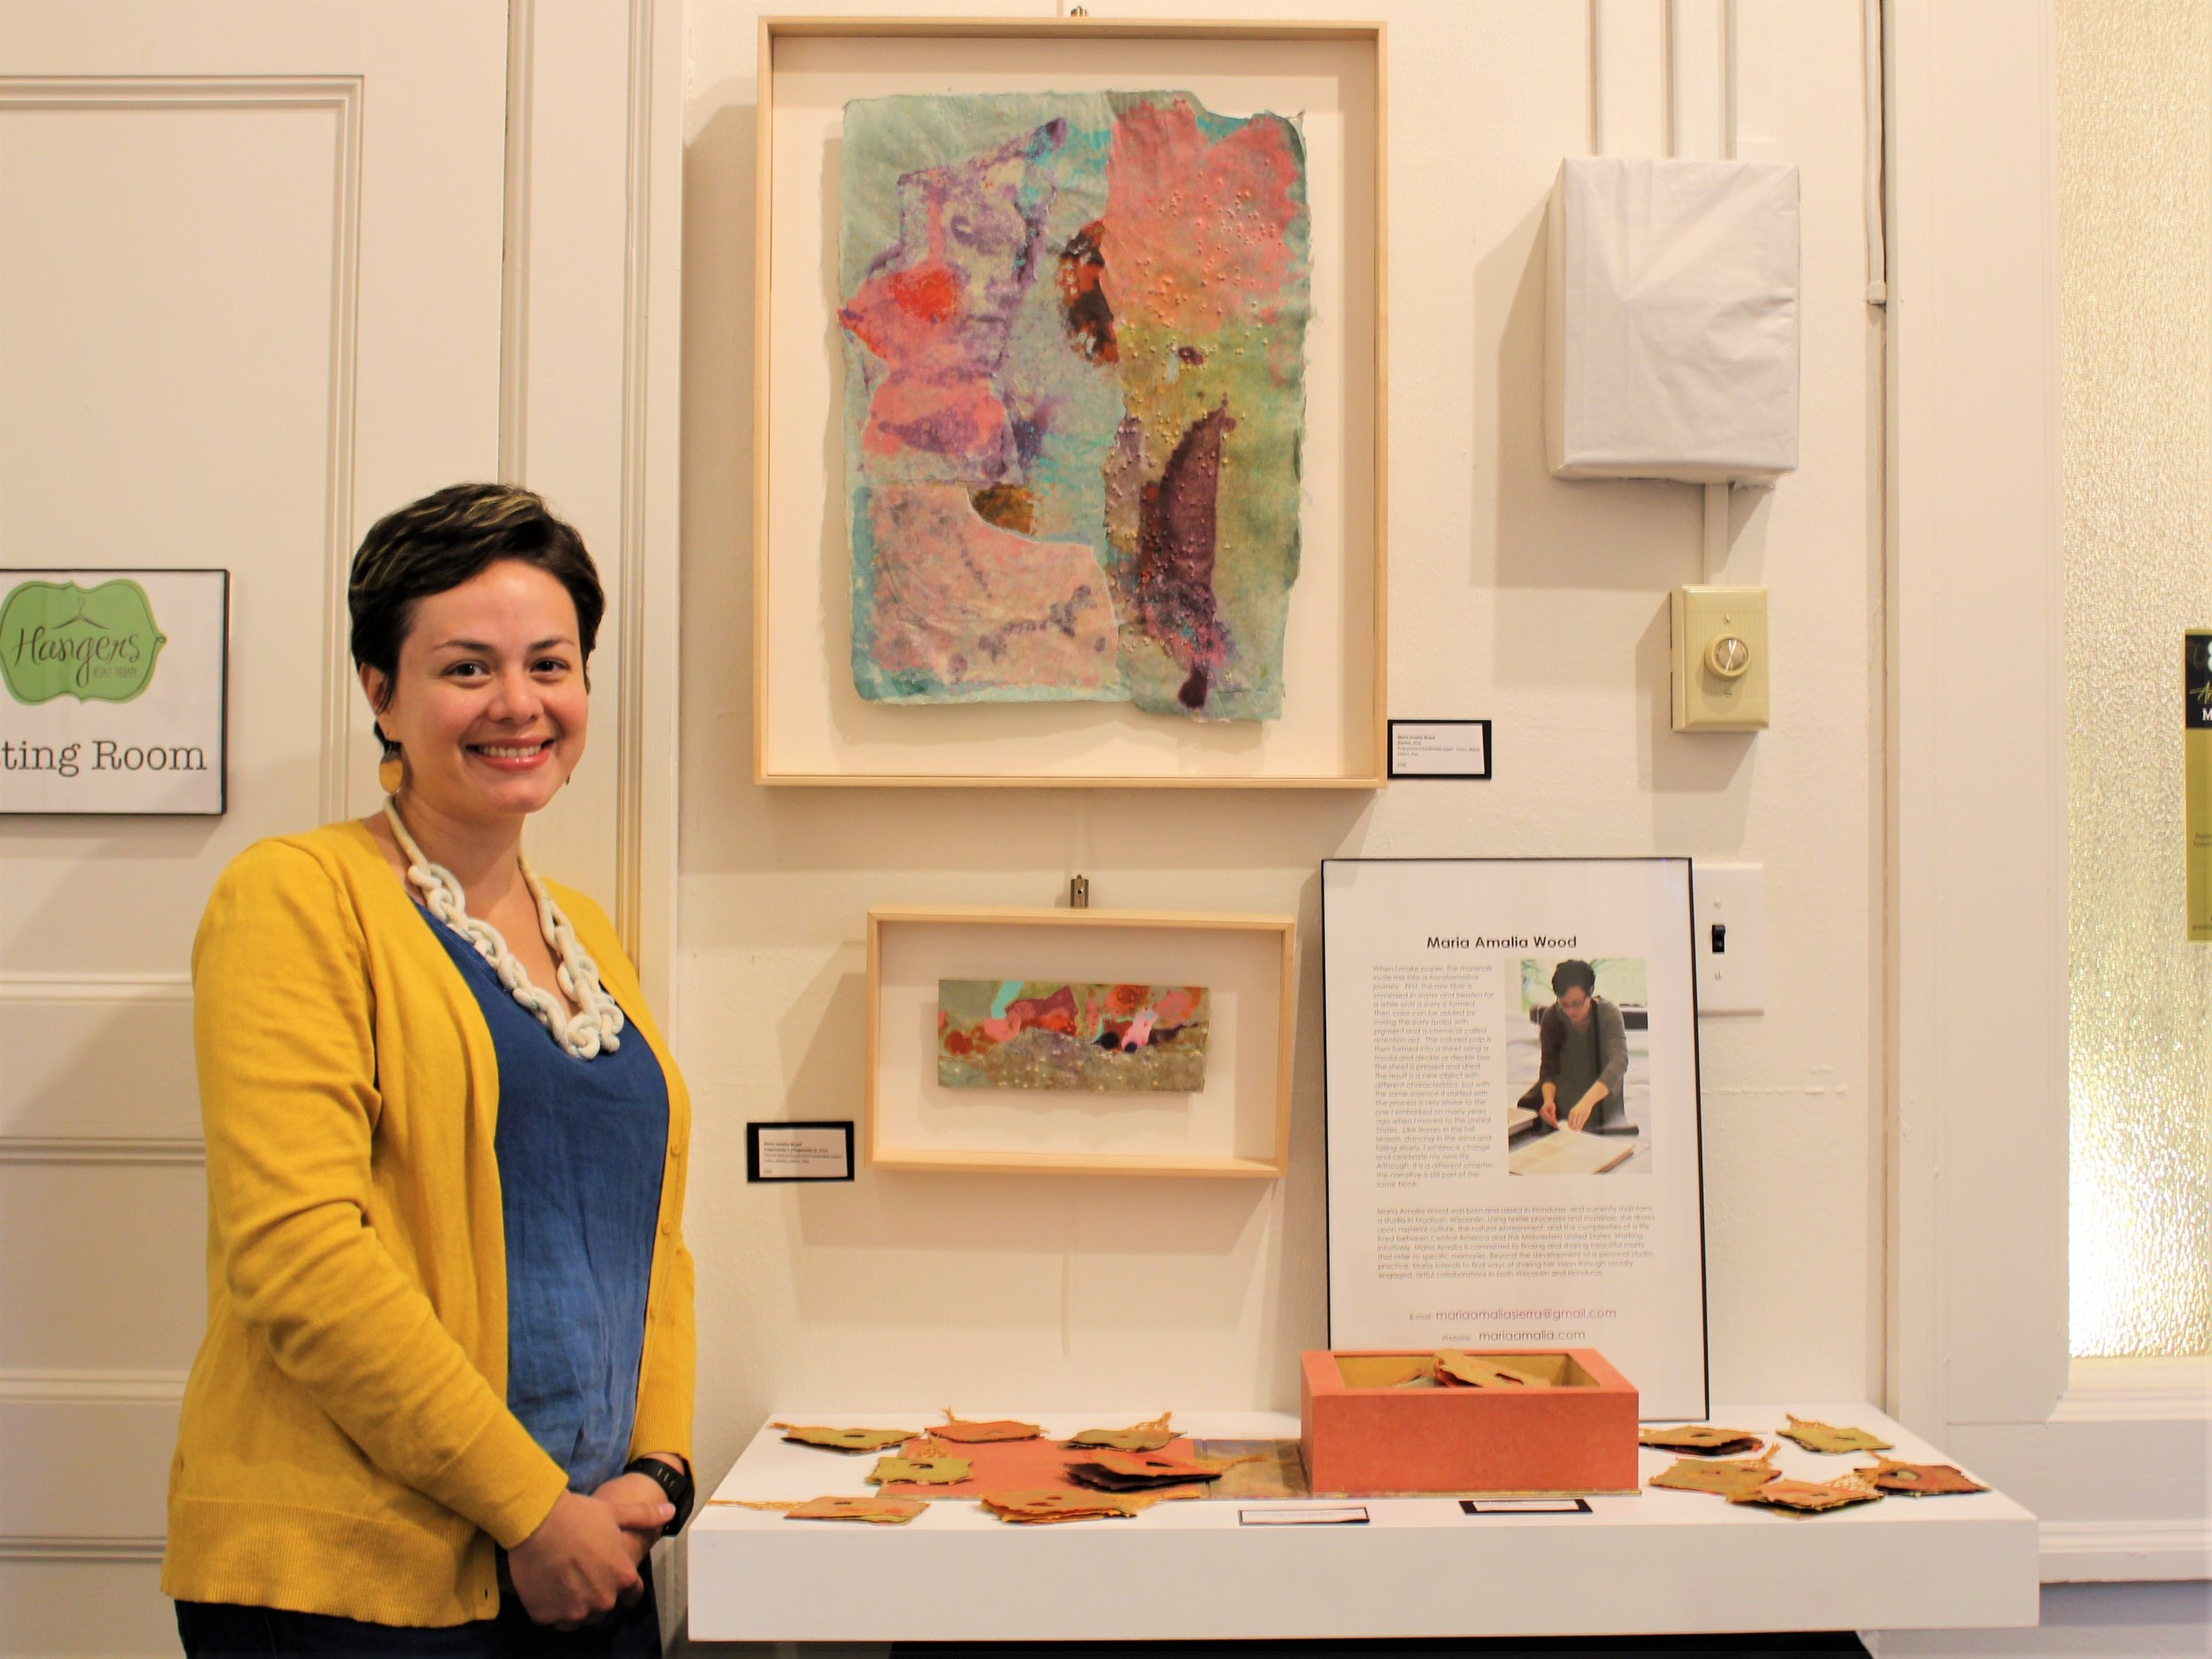 """Winner of the 2017 Midwest Paper Fest juried show, Maria Amalia Wood, poses next to her artwork. Her winning composition featured leaves made of handmade paper accompanied by a short poem: """"Dancing in the wind/ falling down slowly/ a leaf celebrates freedom."""""""